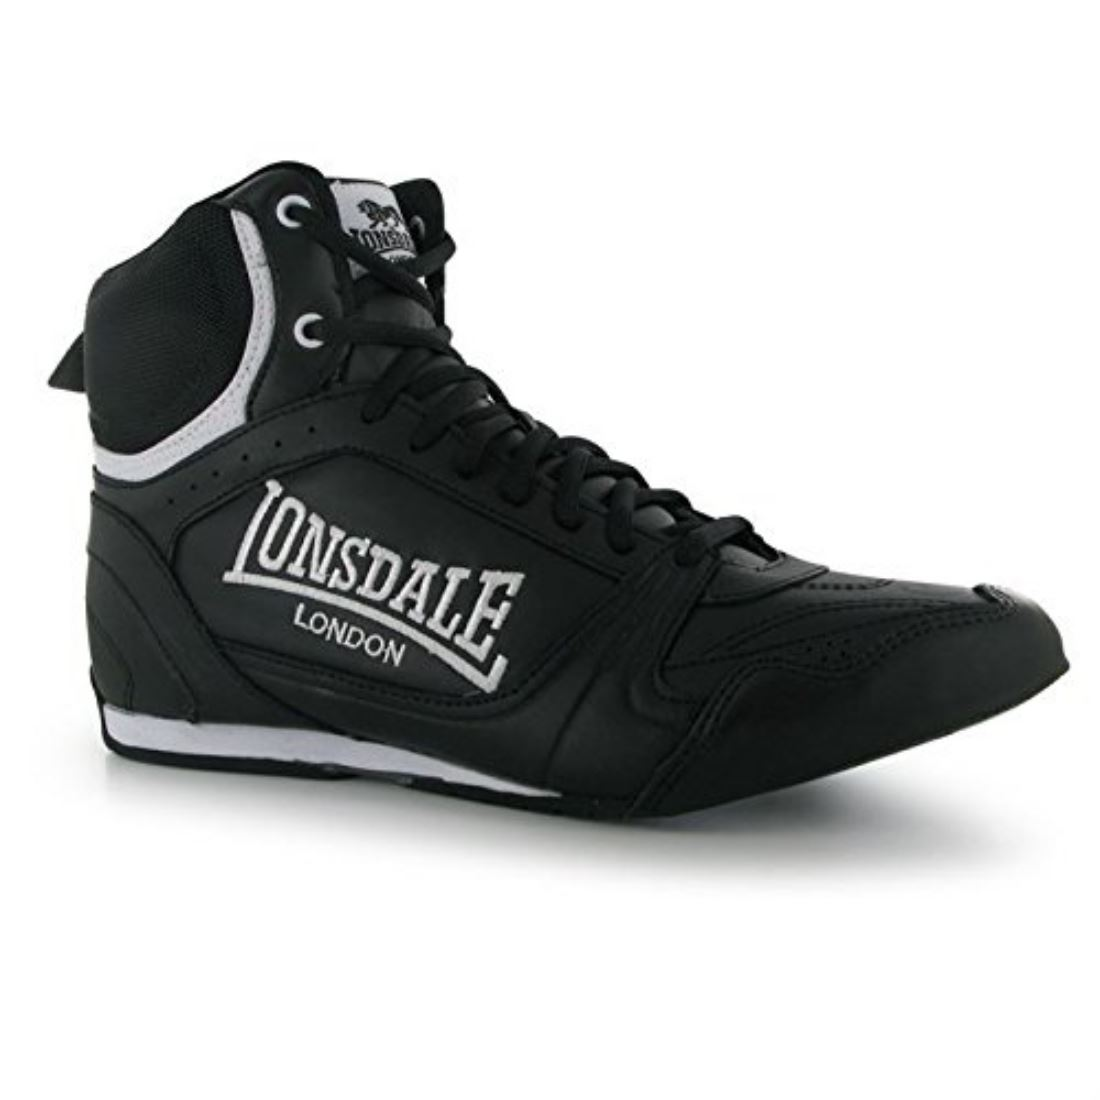 Lonsdale Boxing Shoes Size